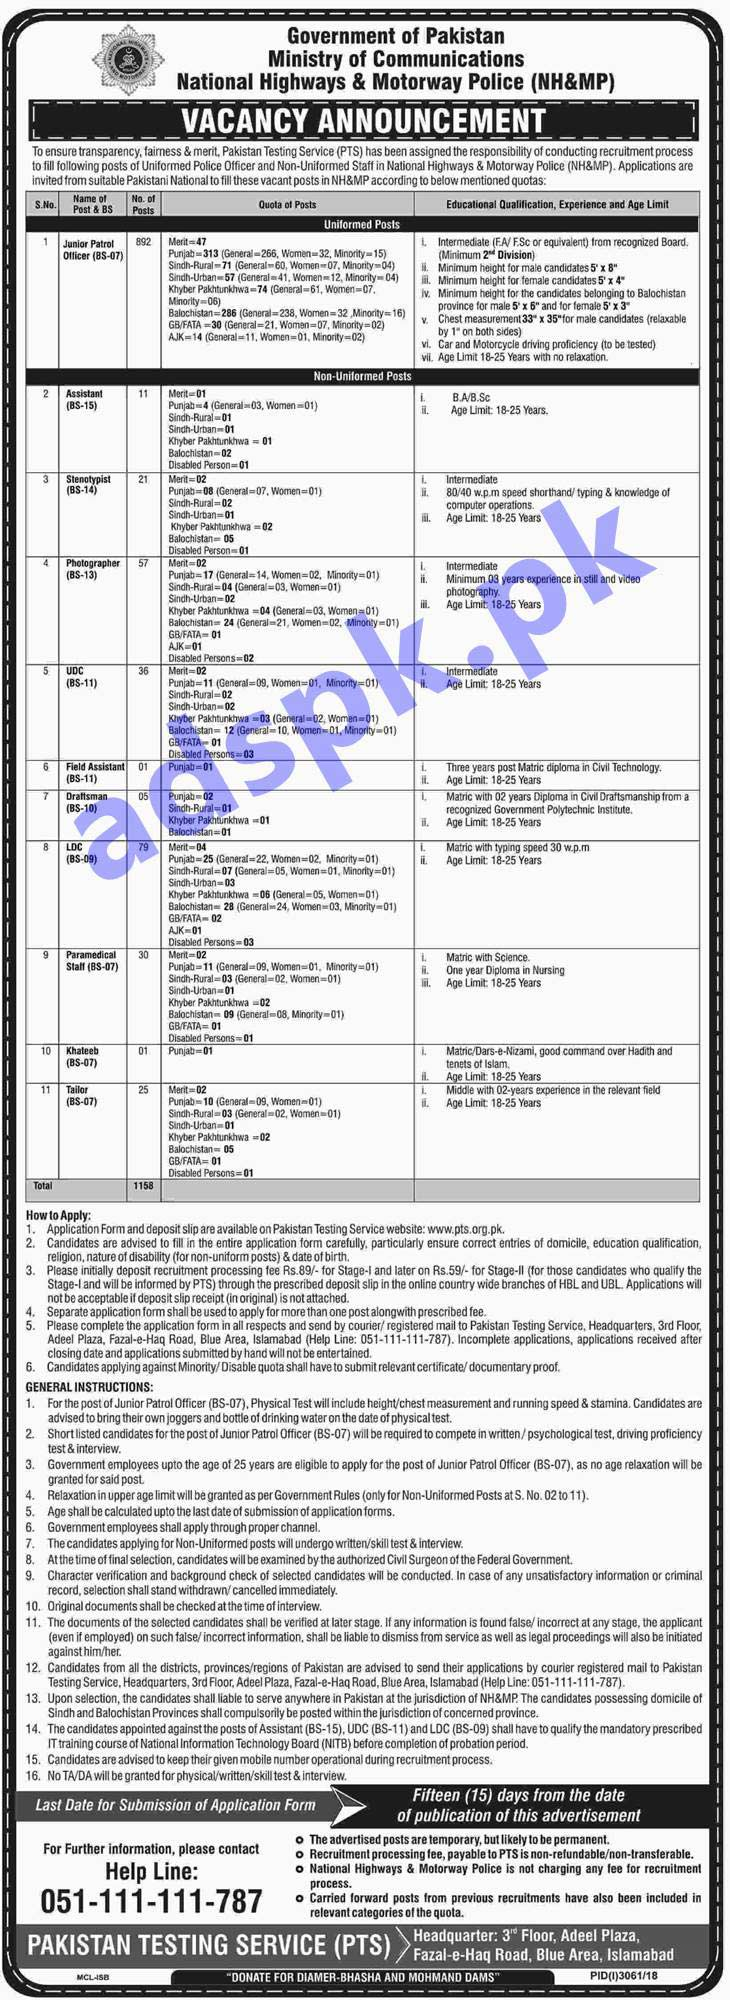 892 JPO Jobs National Highways & Motorway Police (NH&MP) Jobs 2019 PTS Written Test MCQs Syllabus Paper Junior Patrol Officer Assistant Steno Typist Photographer UDC LDC Paramedical Staff Tailor Jobs Application Form Deadline 20-01-2019 Apply Now